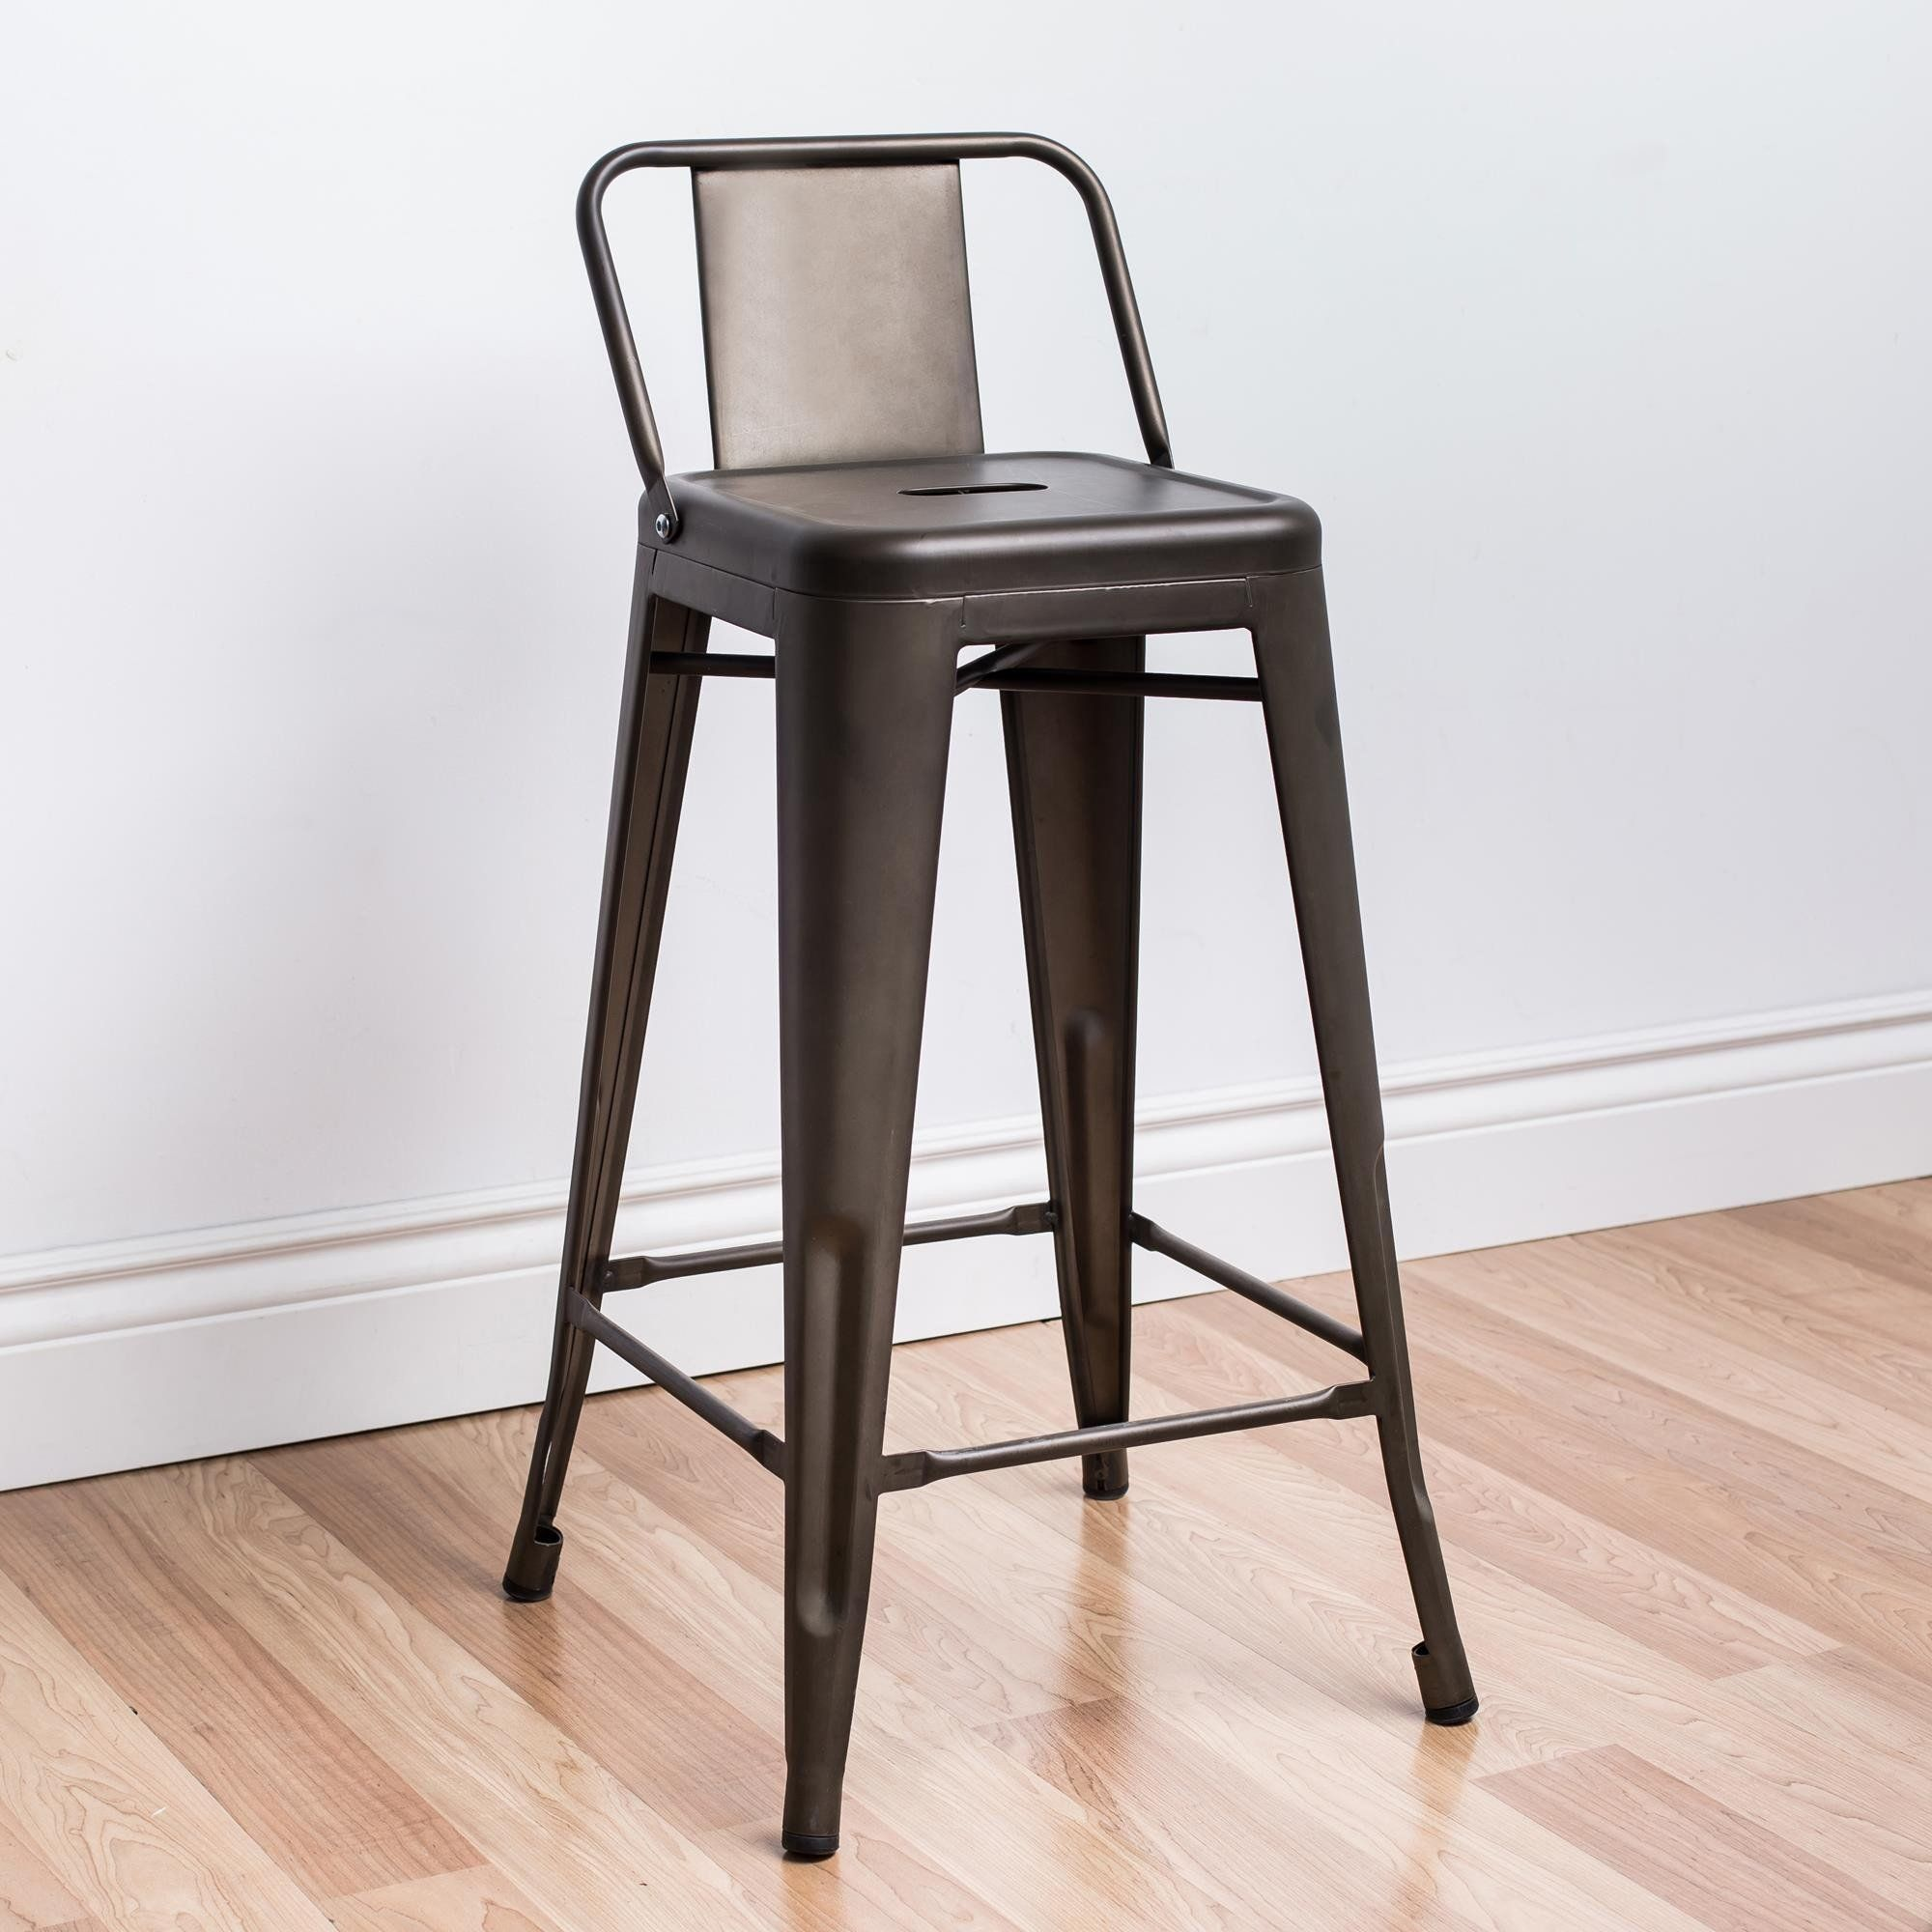 Ksp Toli Metal Counter Stool With Back Gunmetal Available For Sale At The Best Price At Kitc Counter Stools With Backs Metal Counter Stools Stools With Backs